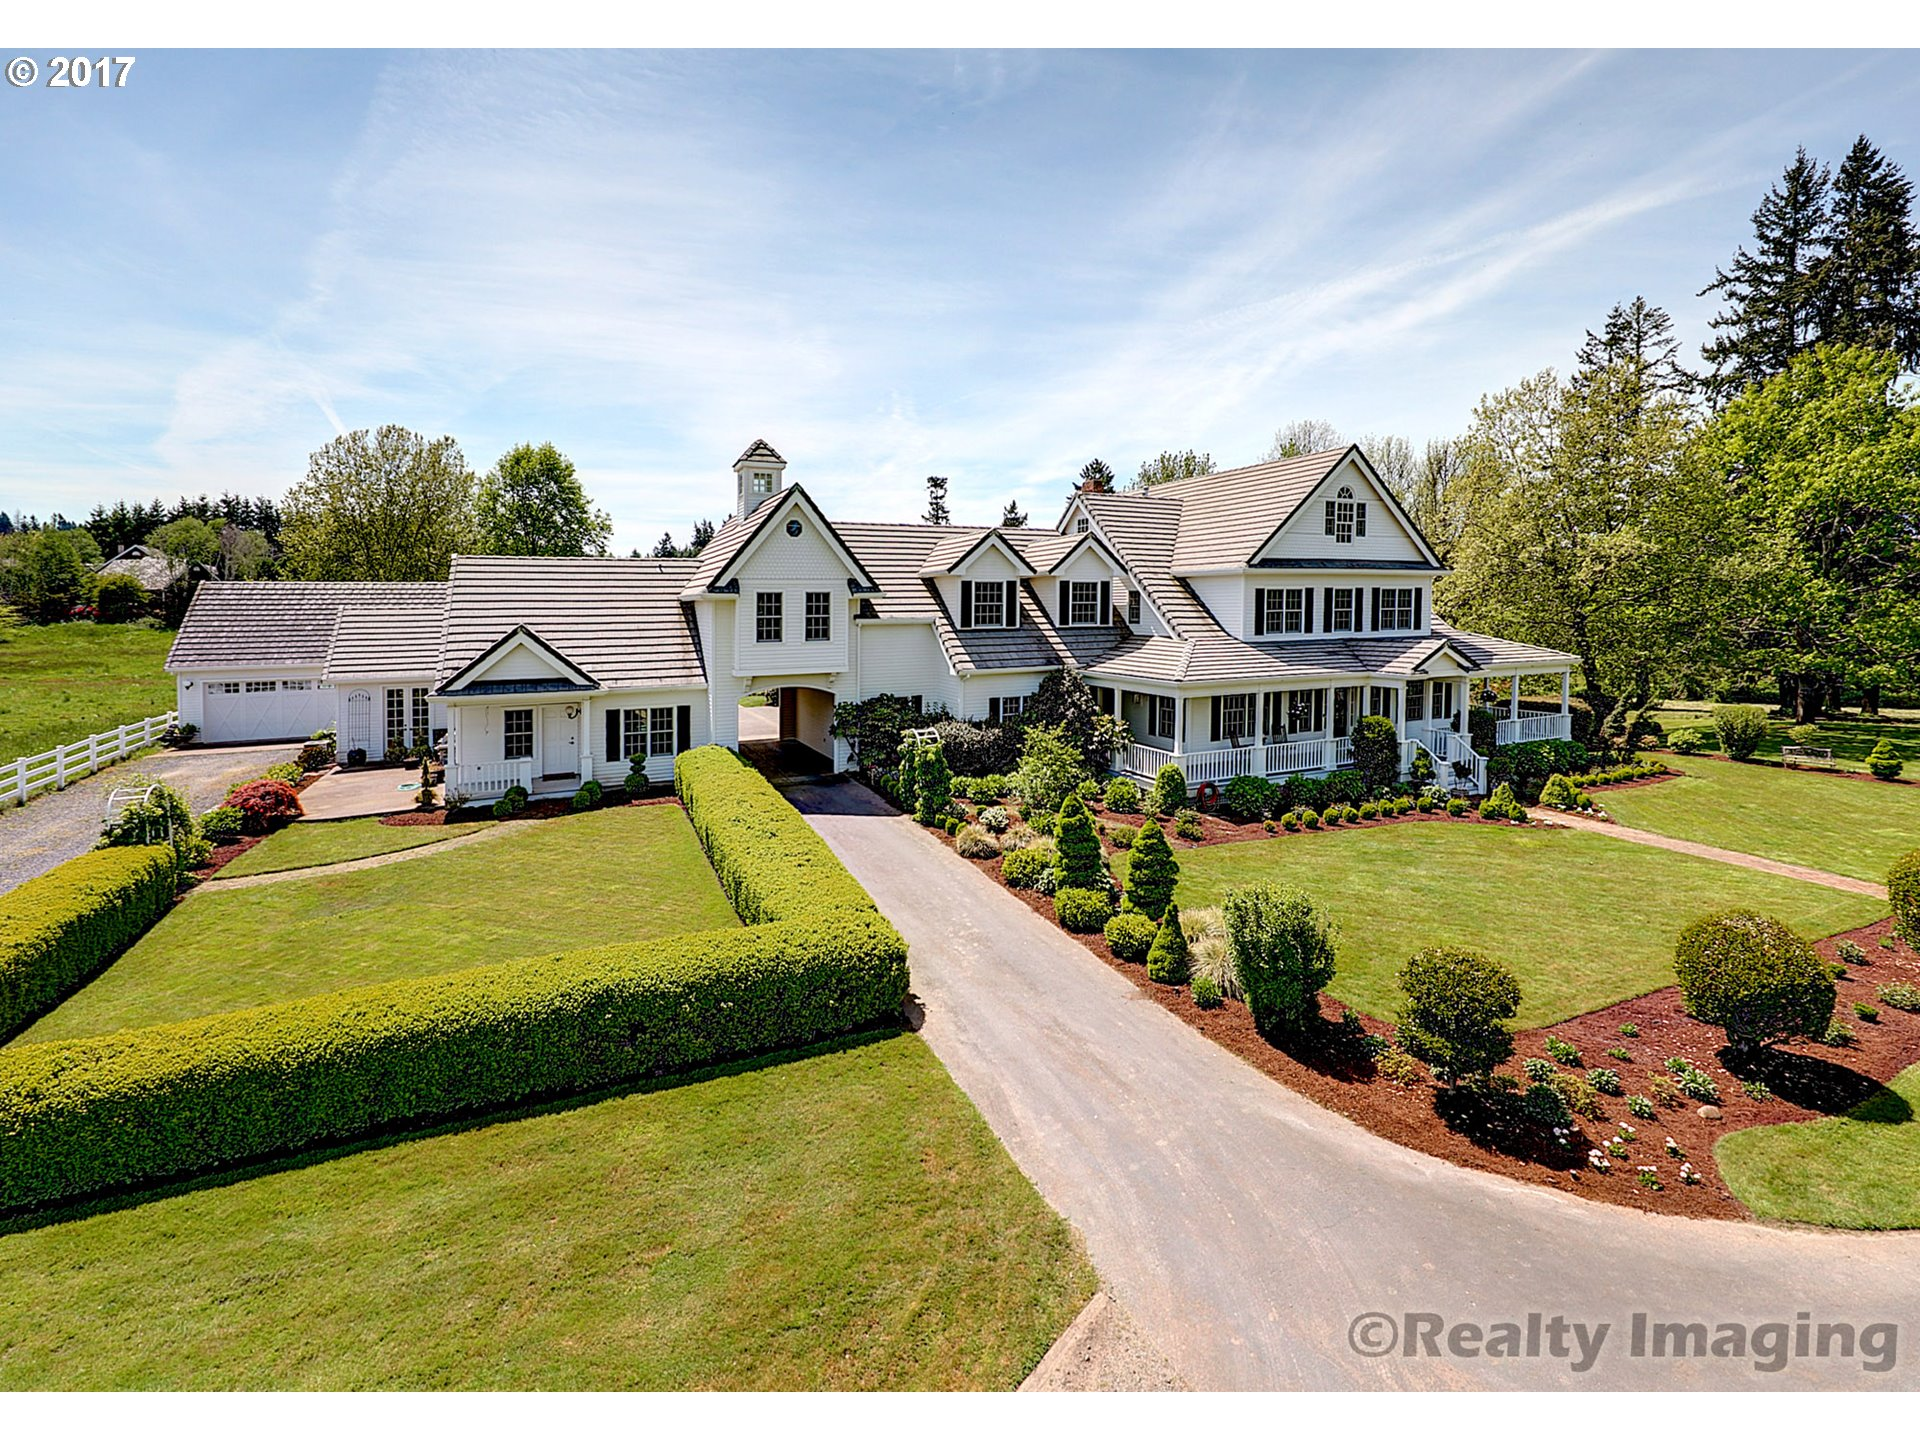 6210 SW DELKER RD, Tualatin, OR 97062